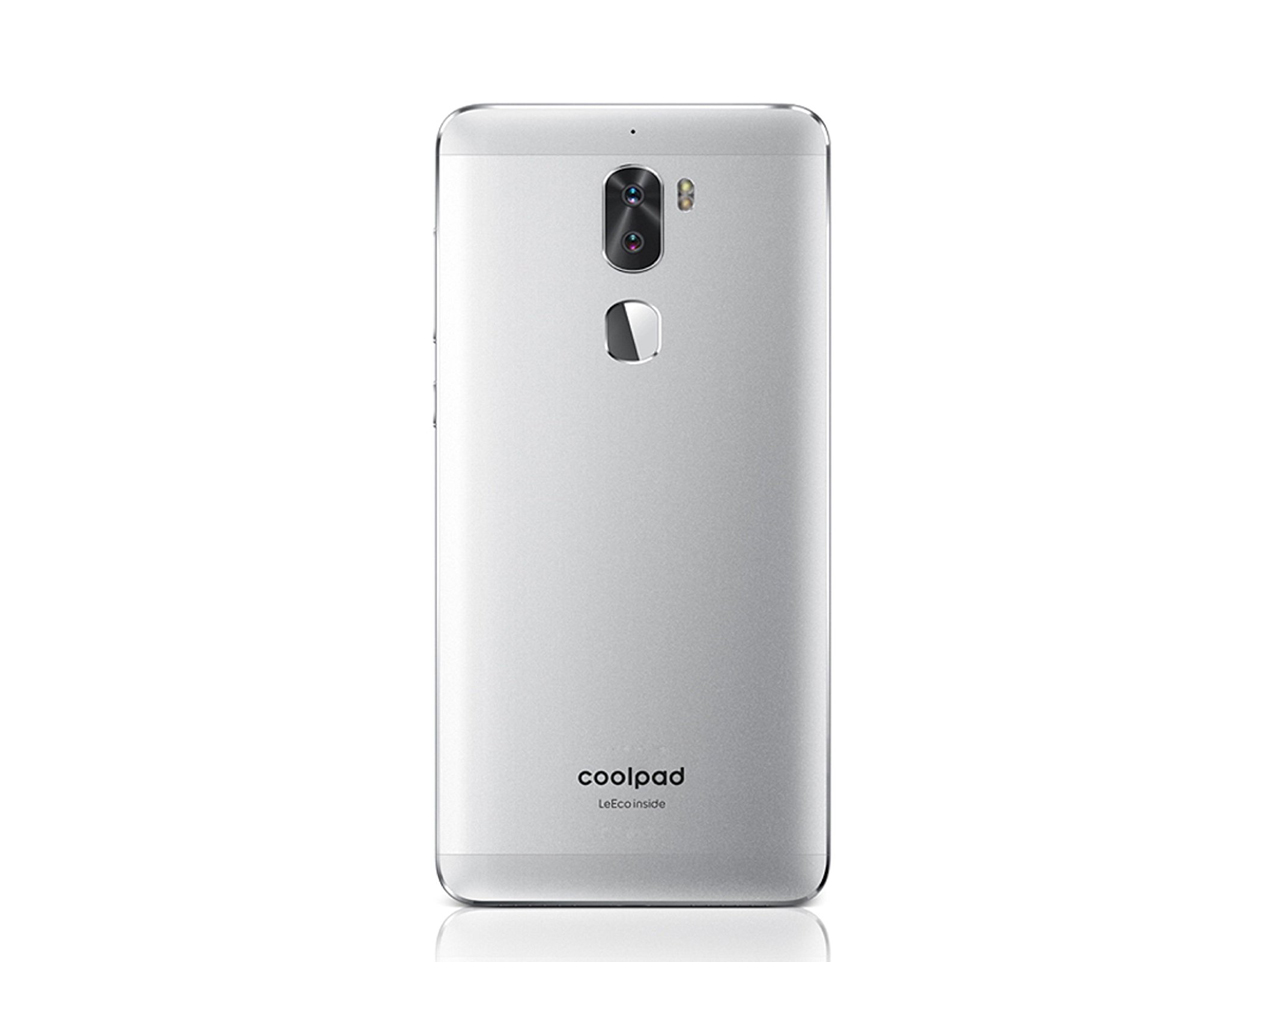 Coolpad Cool Series - Notebookcheck net External Reviews